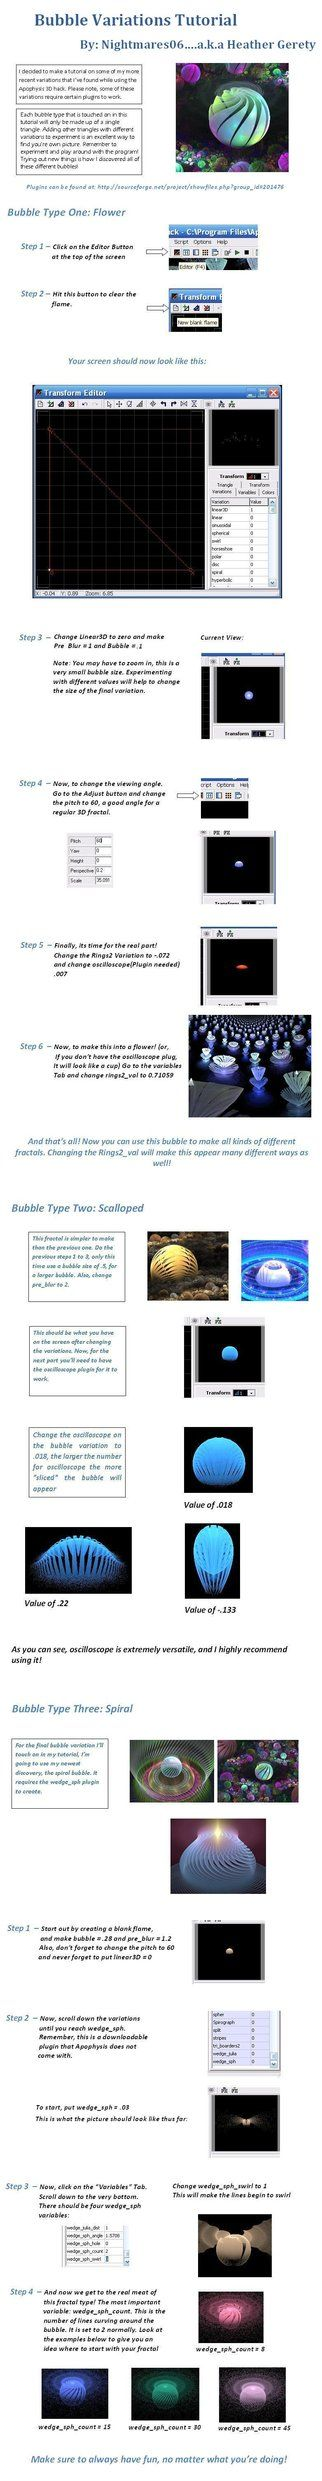 Bubble Variation Tutorial by nightmares06 on DeviantArt